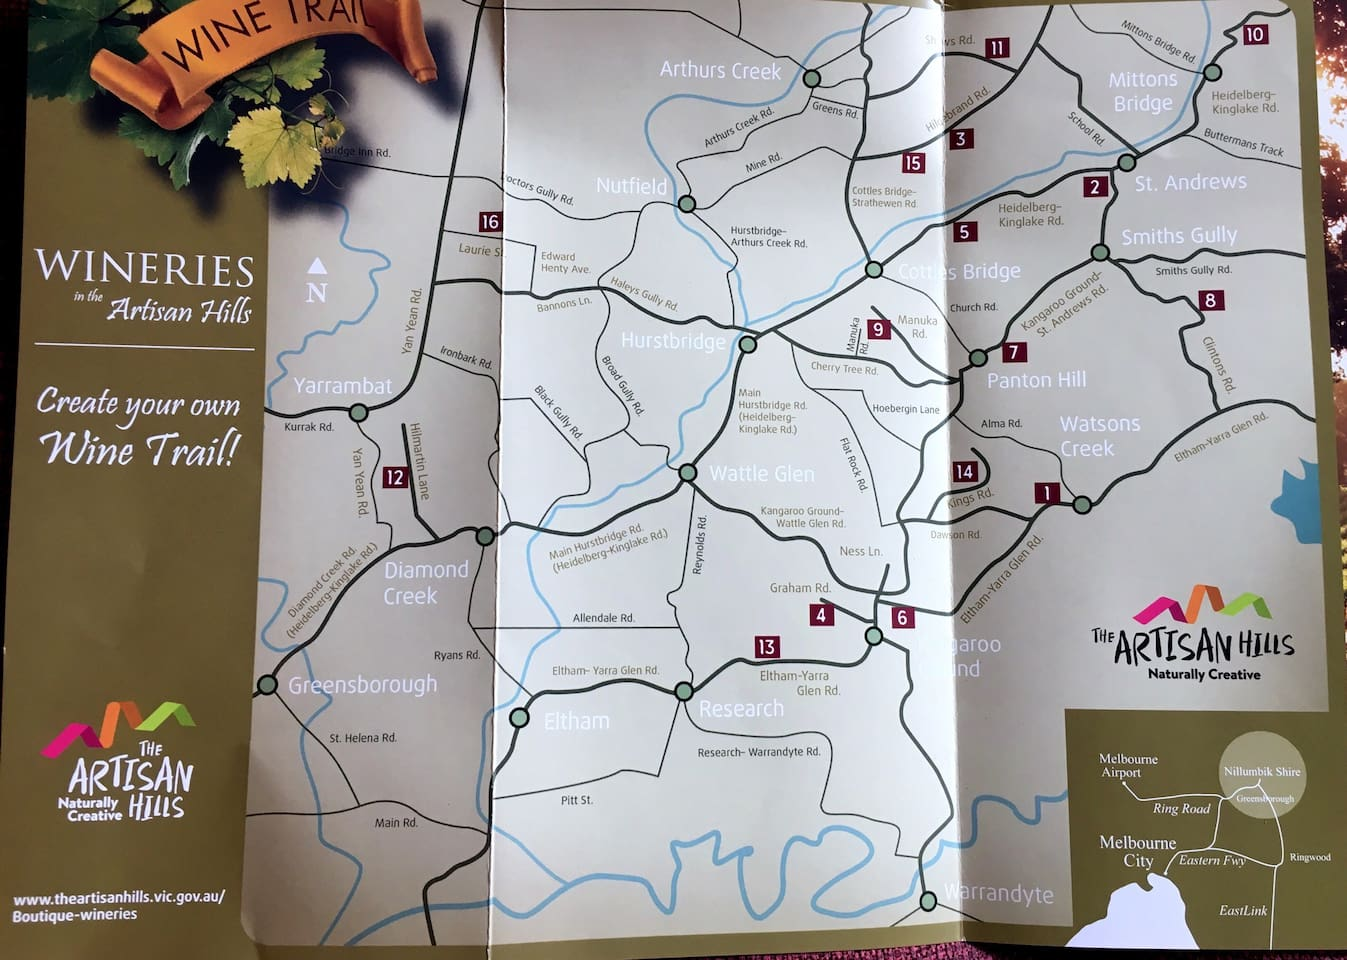 Trail of Artisan Hills Wineries.